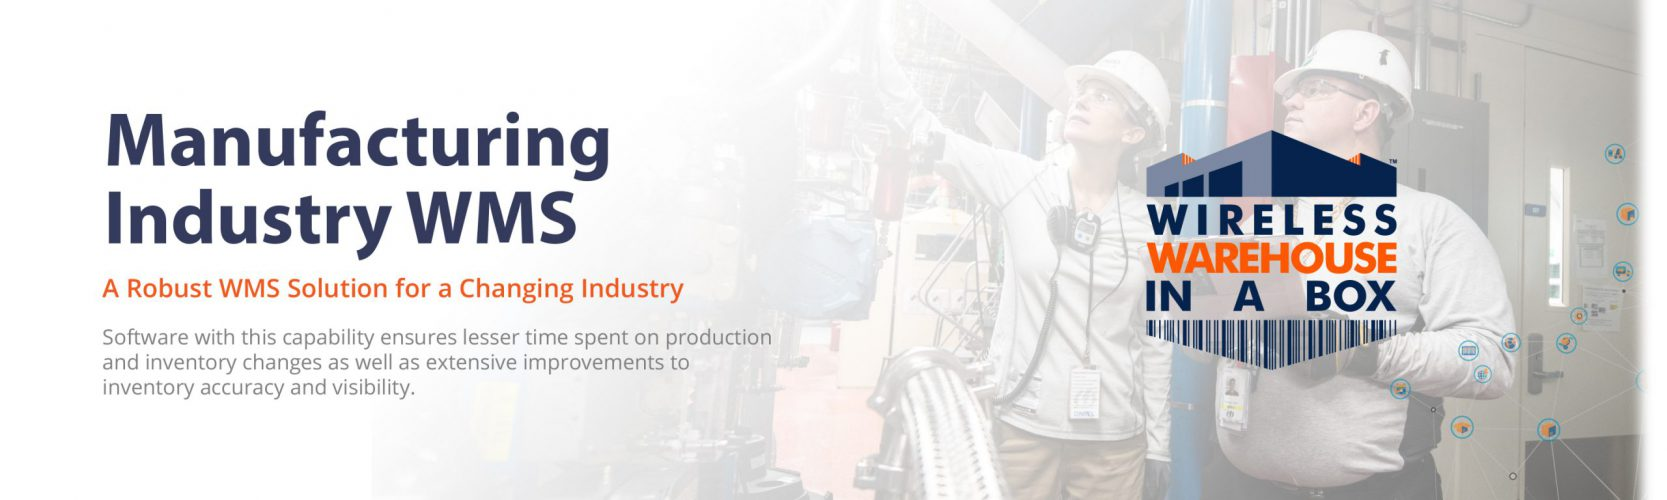 Manufacturing_Header_Content